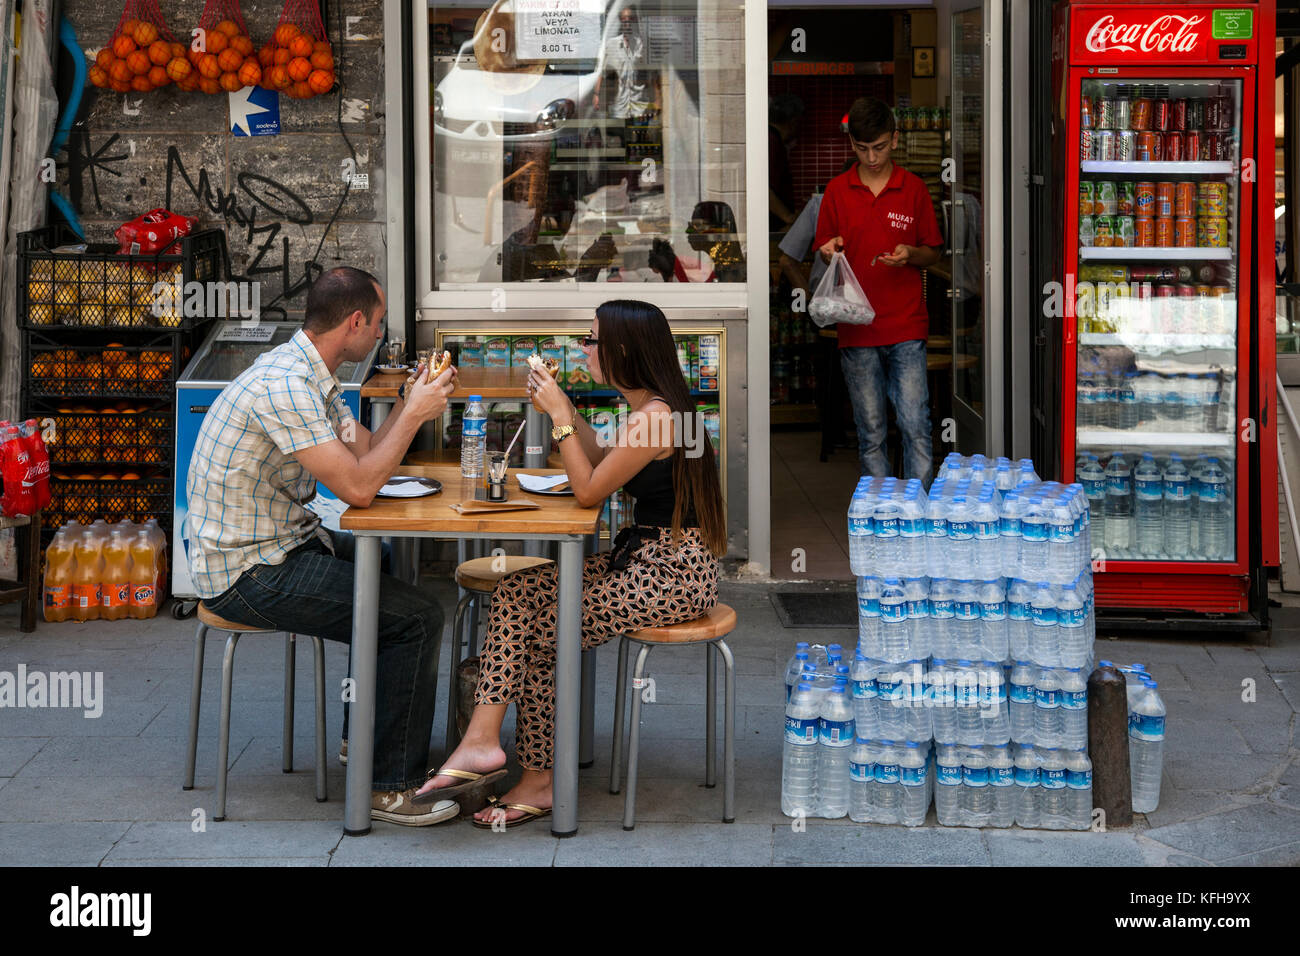 A couple eat lunch outside a market in Istanbul, Turkey, while another customer exits the store. - Stock Image